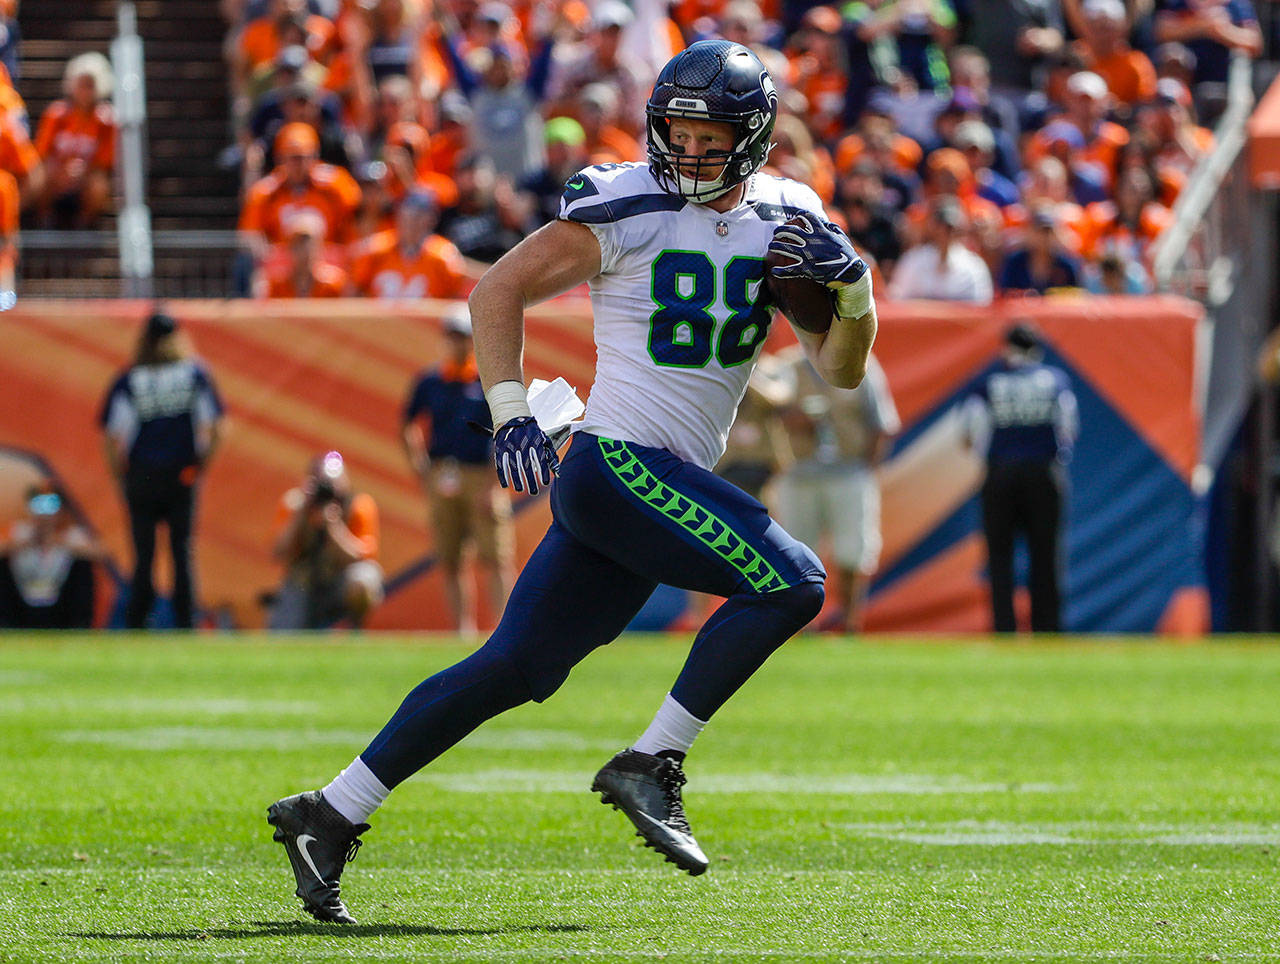 Seahawks tight end Will Dissly (88) runs after a catch during a game against the Broncos on Sept. 9, 2018, in Denver. (AP Photo/Jack Dempsey)